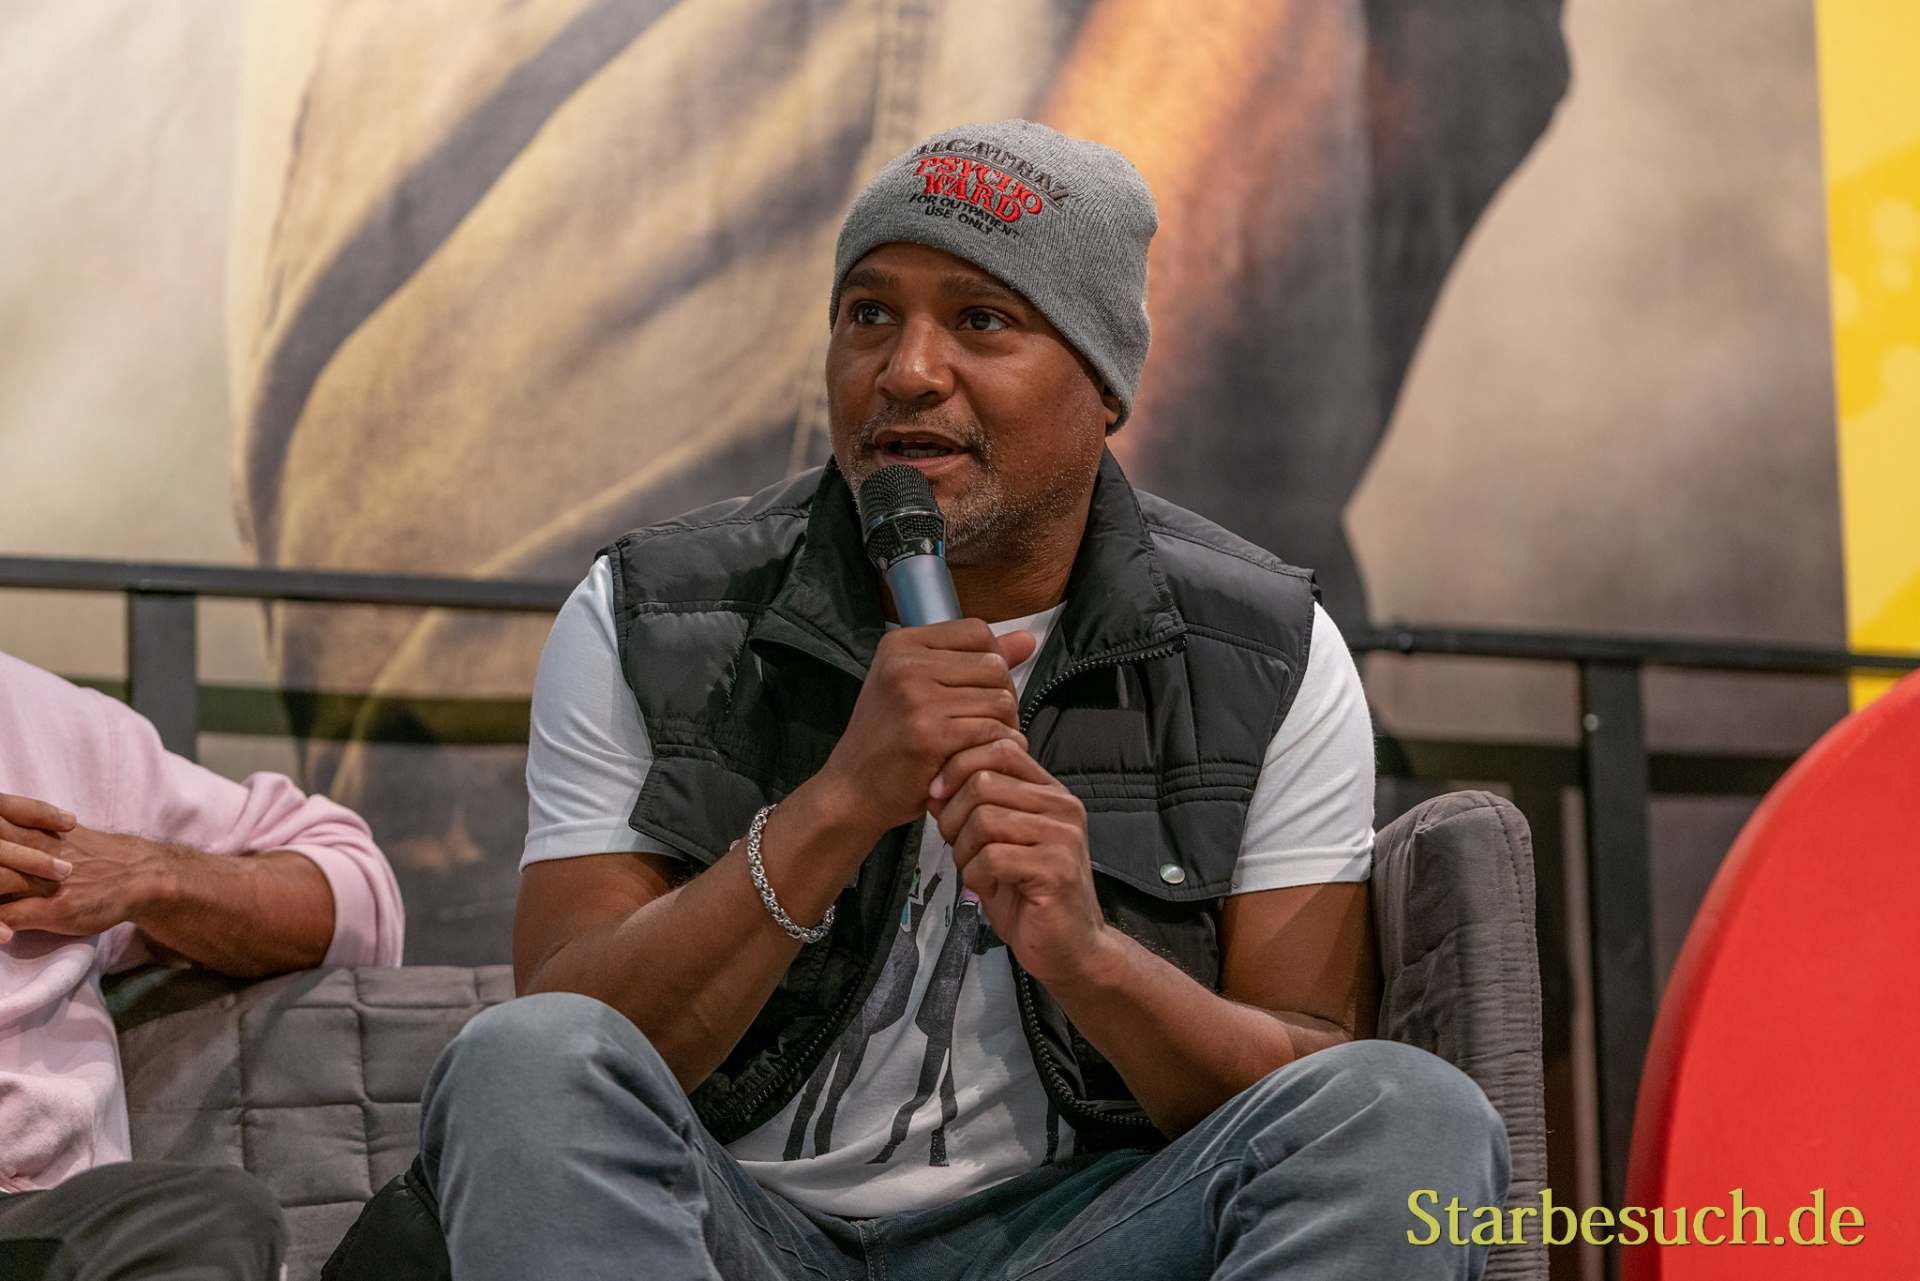 DORTMUND, GERMANY - December 8th 2019: Seth Gilliam at German Comic Con Dortmund